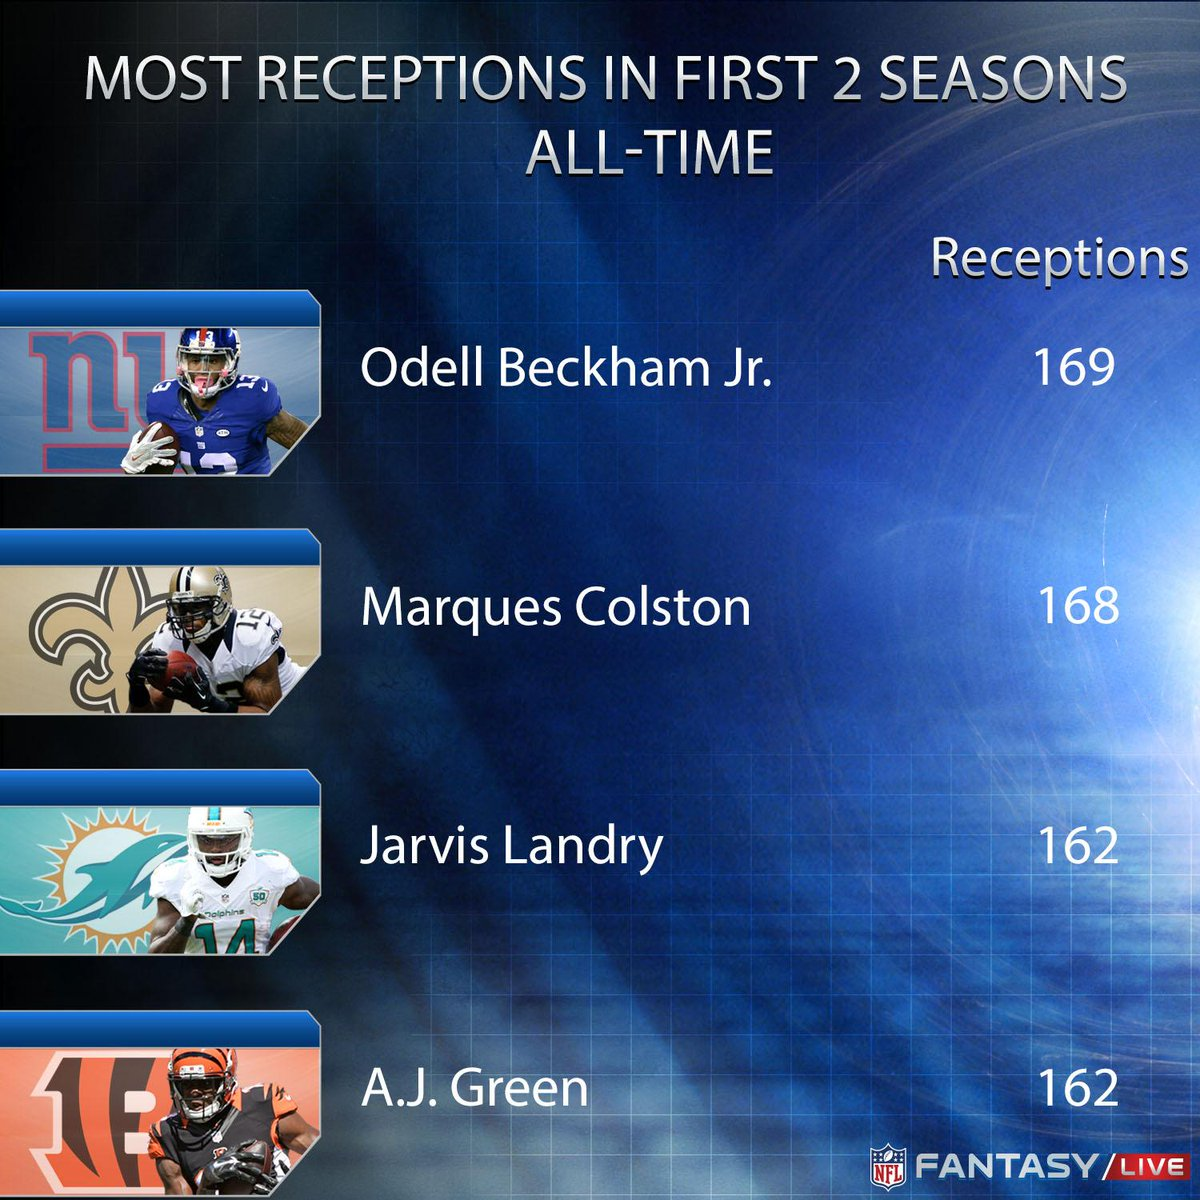 Most Receptions in First Two Seasons  1. @OBJ_3 2. Colston 3. @God_Son80  NFL Fantasy LIVE is on @nflnetwork next. https://t.co/435YLPvetw